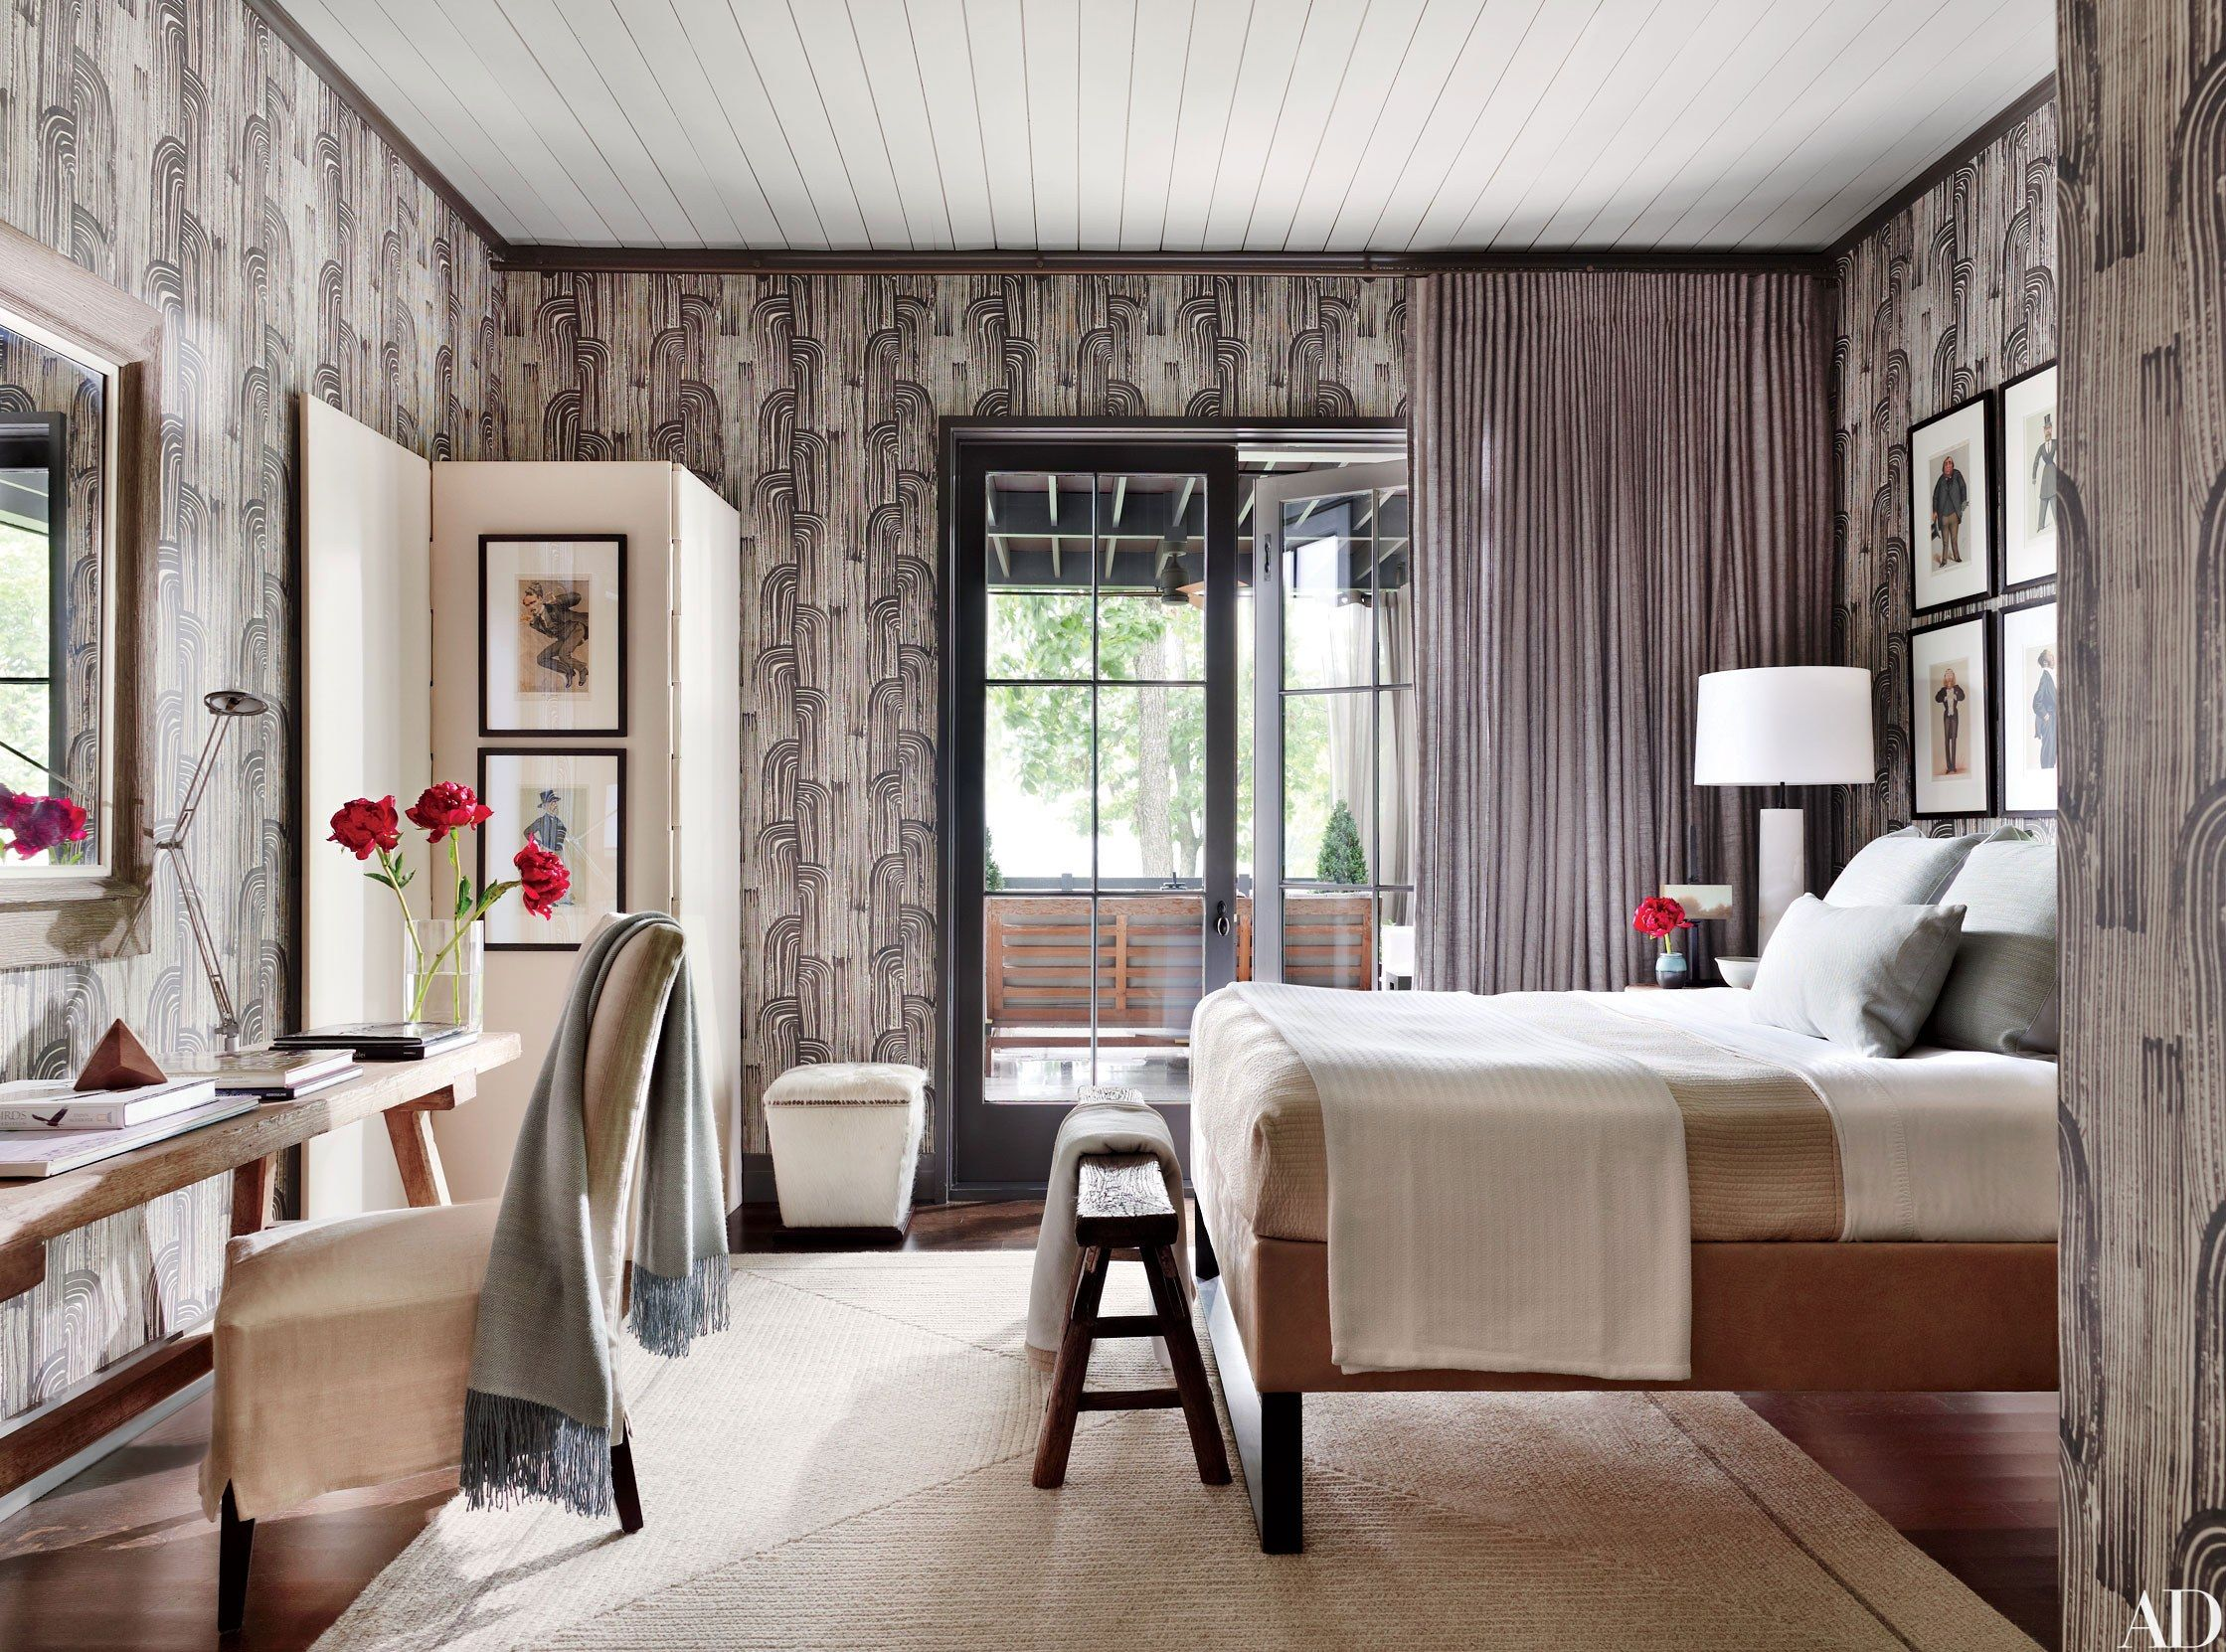 Gelbes esszimmer dekor  inspiring rooms with wallpaper  interiors  pinterest